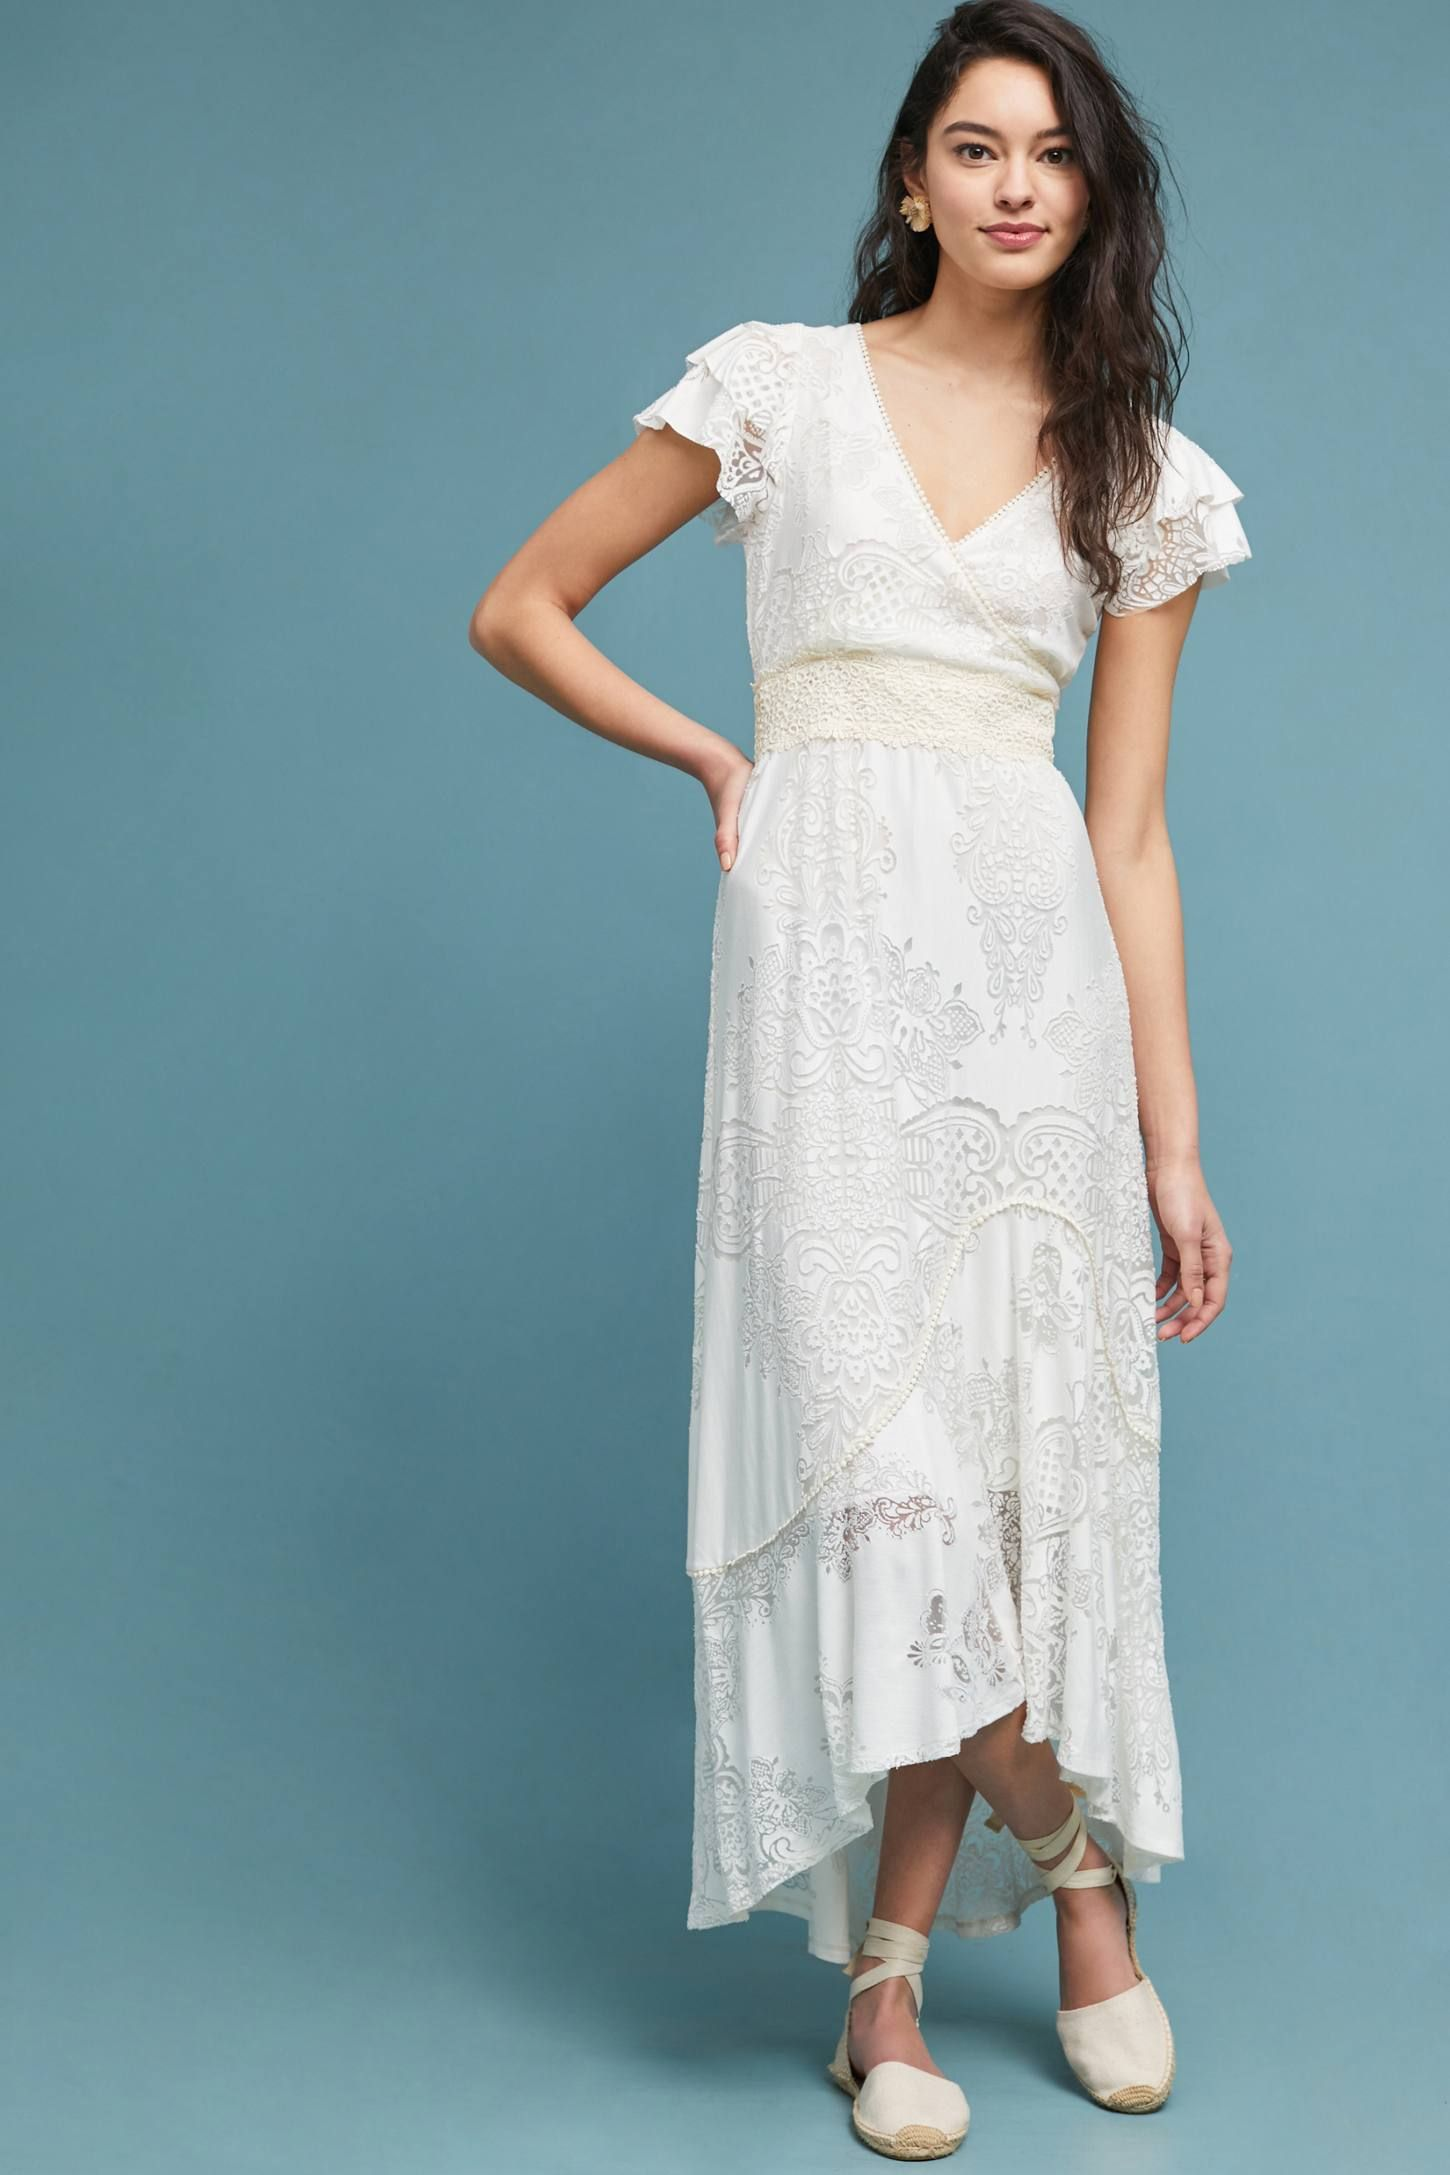 a901c0484251 Shop the Farm Rio Gerty Maxi Dress and more Anthropologie at Anthropologie  today. Read customer reviews, discover product details and more.